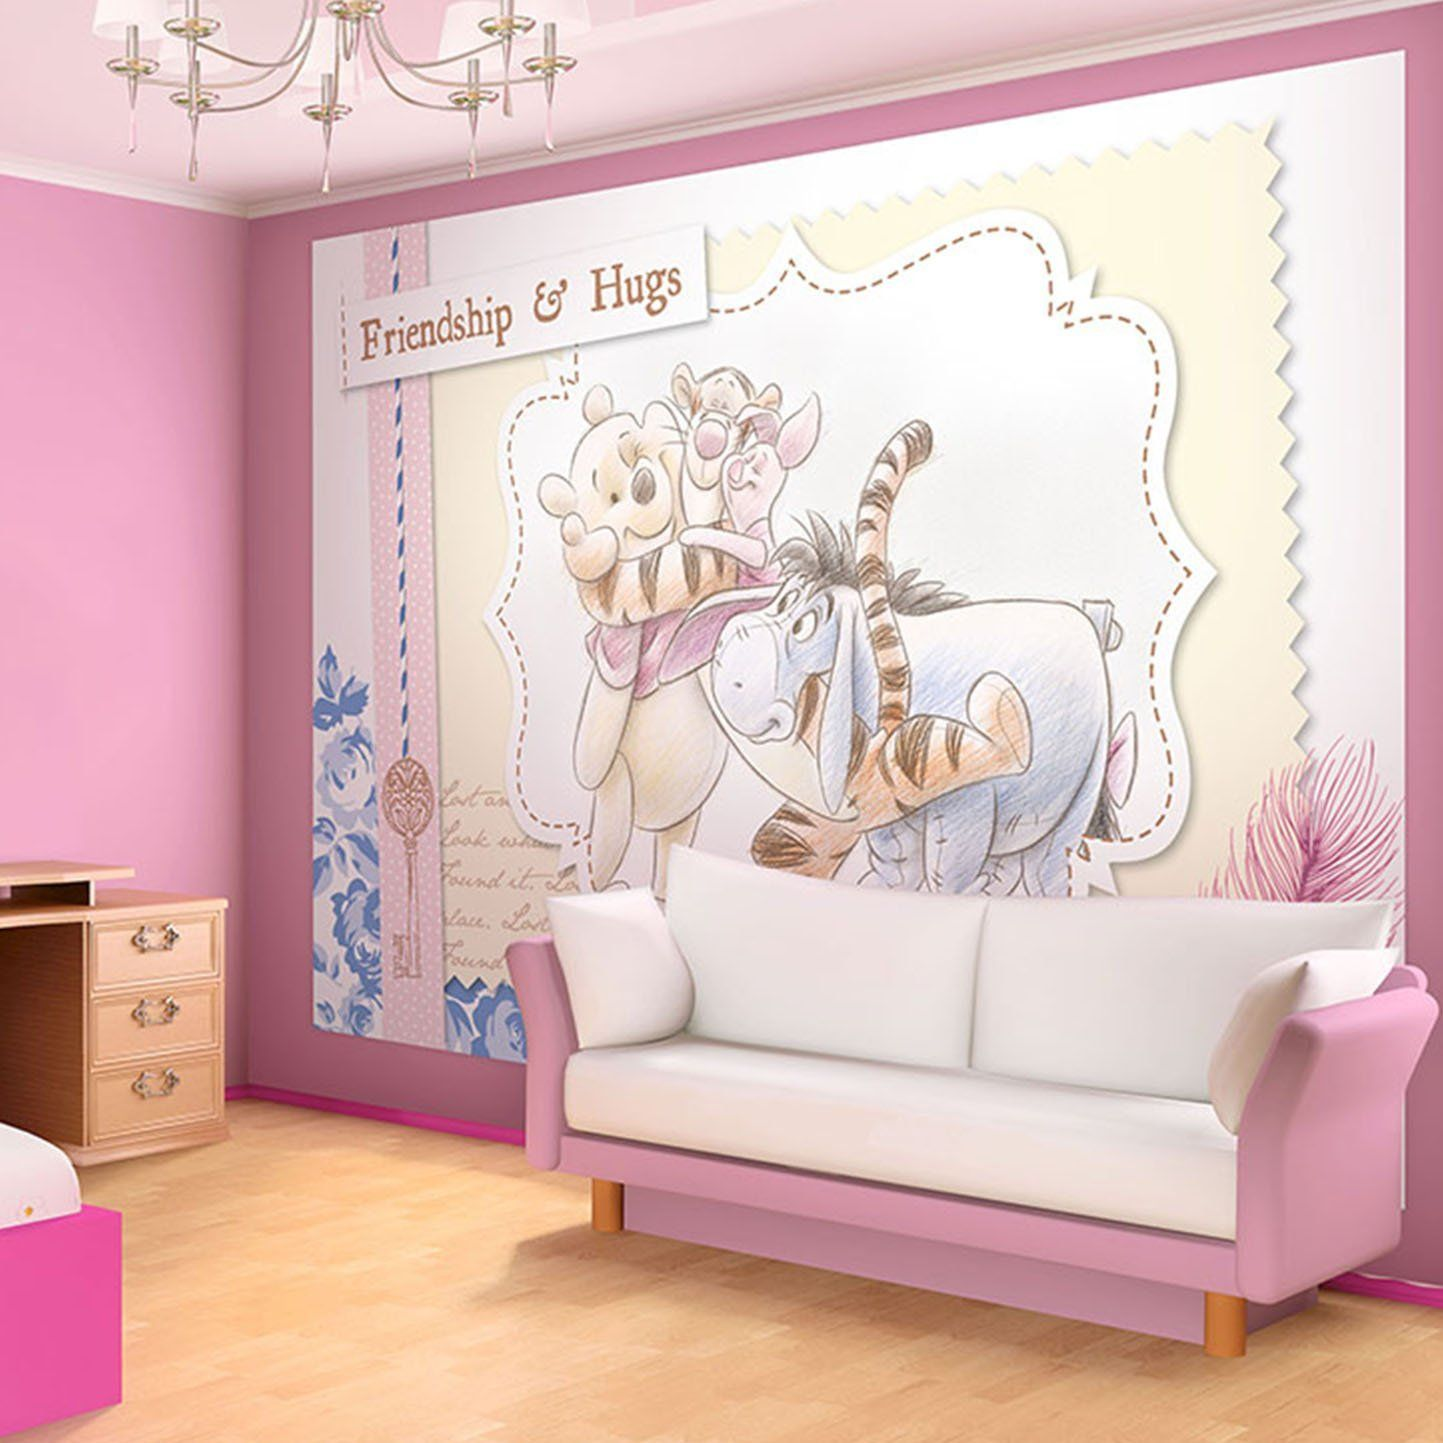 vlies fototapeten fototapete wandbild tapeten disney winnie pooh winnie pooh kinderzimmer. Black Bedroom Furniture Sets. Home Design Ideas